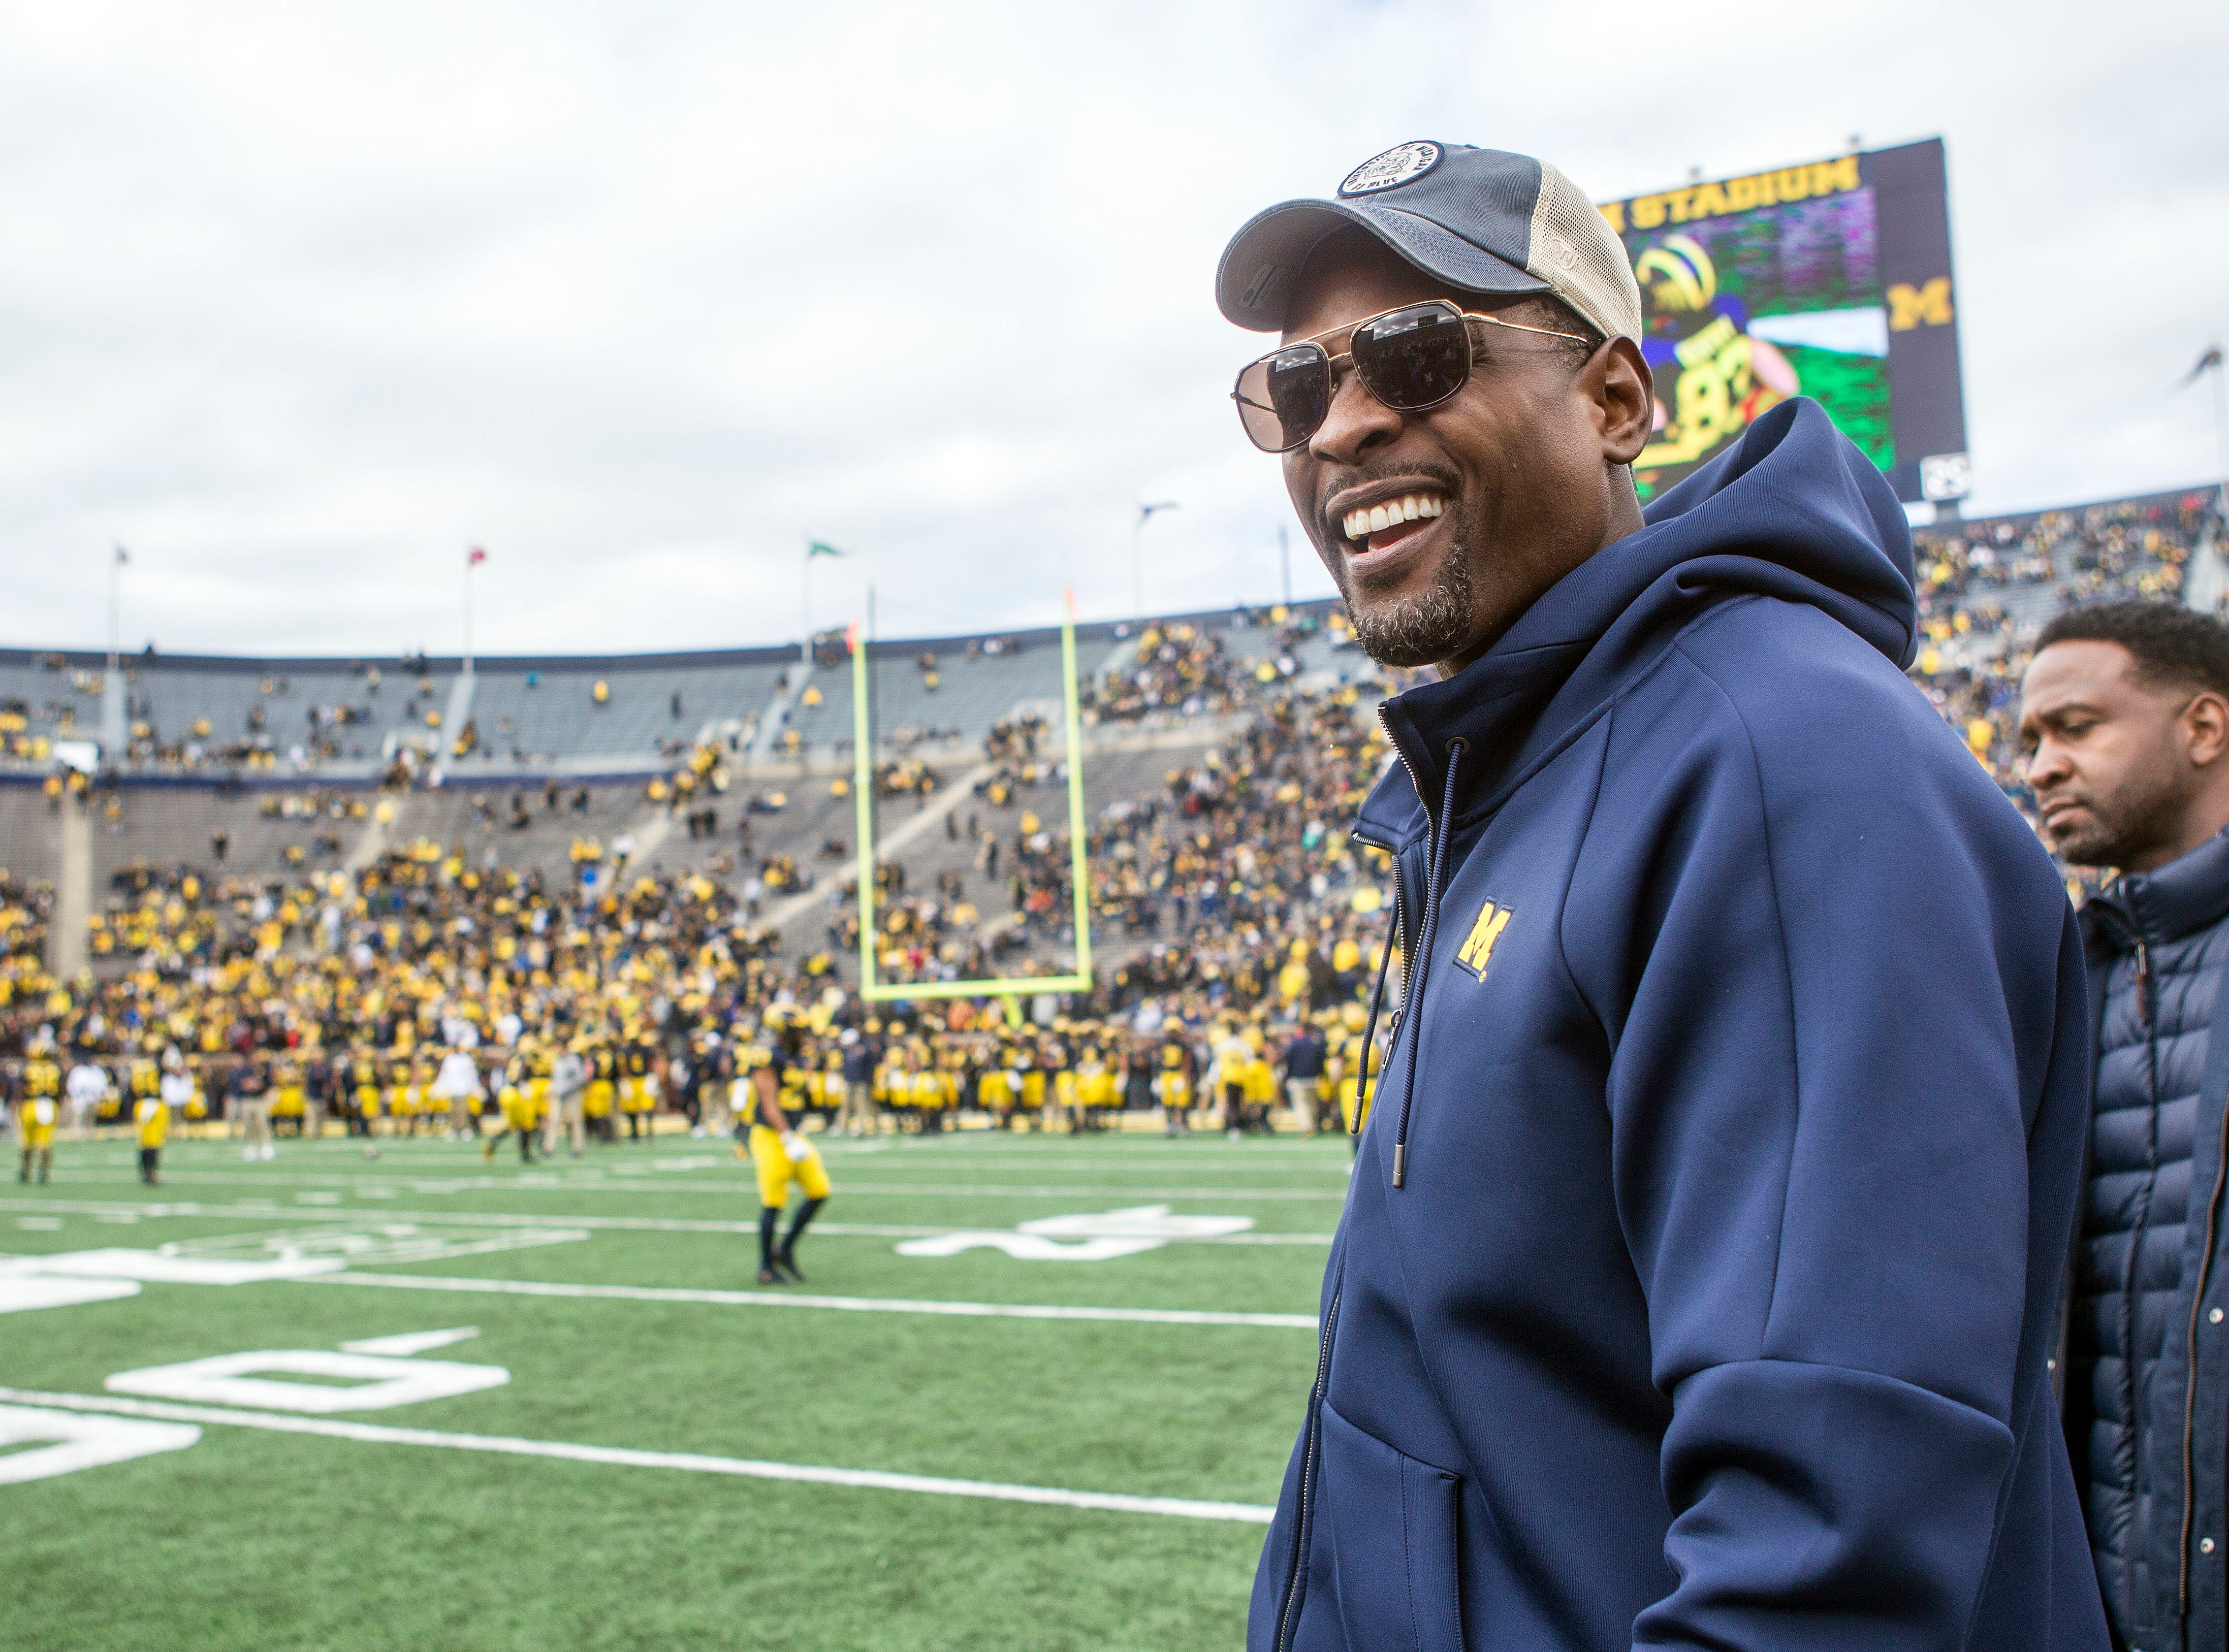 Former Michigan basketball player Chris Webber, right, watch pregame warmups on the Michigan Stadium field prior to an NCAA college football game against Penn State in Ann Arbor, Mich., Saturday, Nov. 3, 2018. Michigan is making Webber an honorary captain for the game. (AP Photo/Tony Ding)